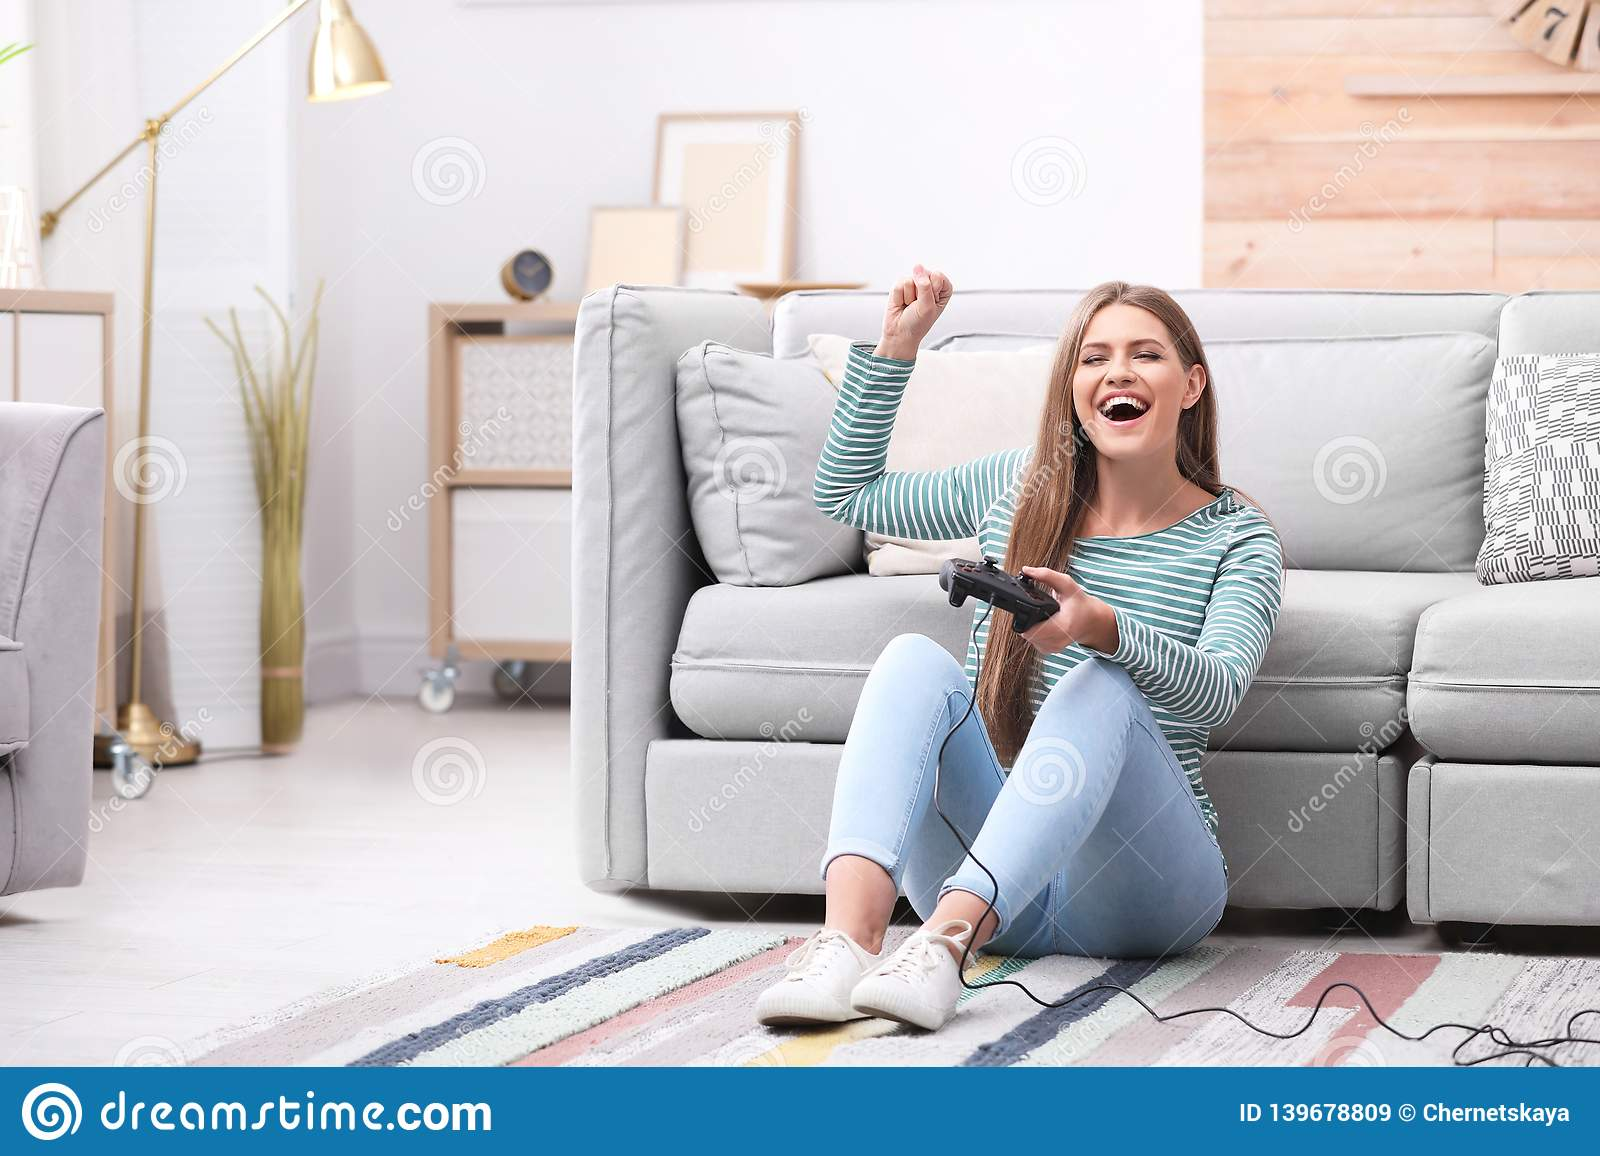 Emotional young woman playing video games